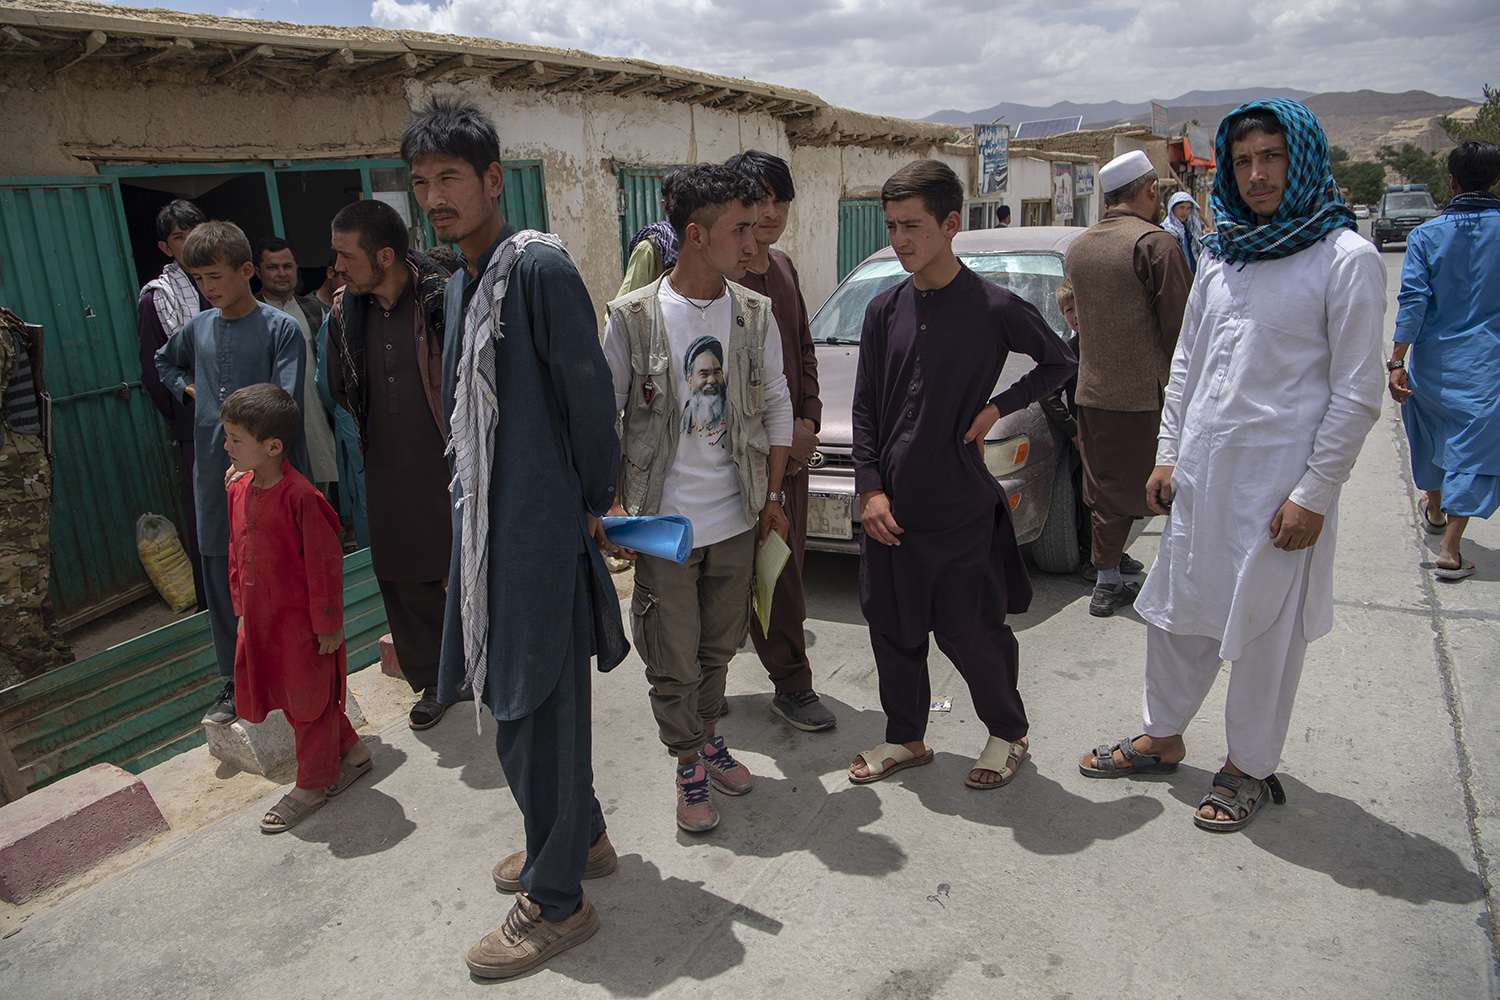 Men and boys stand in the street in Saighan district on July 21.